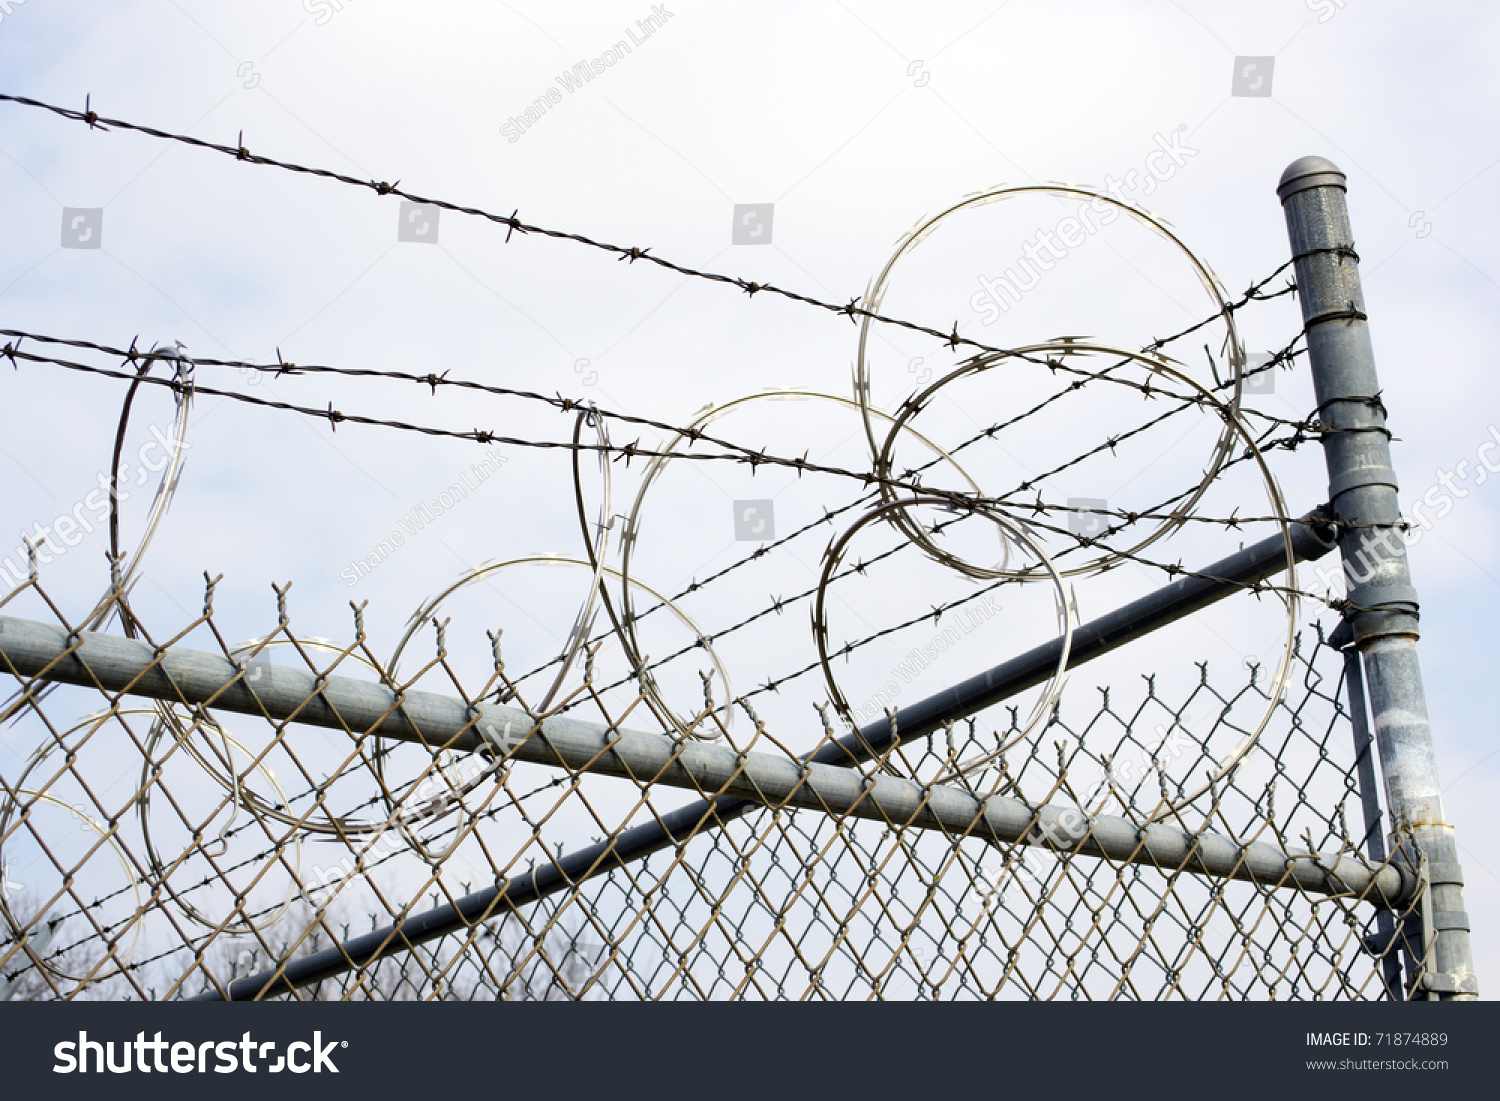 Attractive How To Install Razor Wire On Wall Ideas - Wiring ...